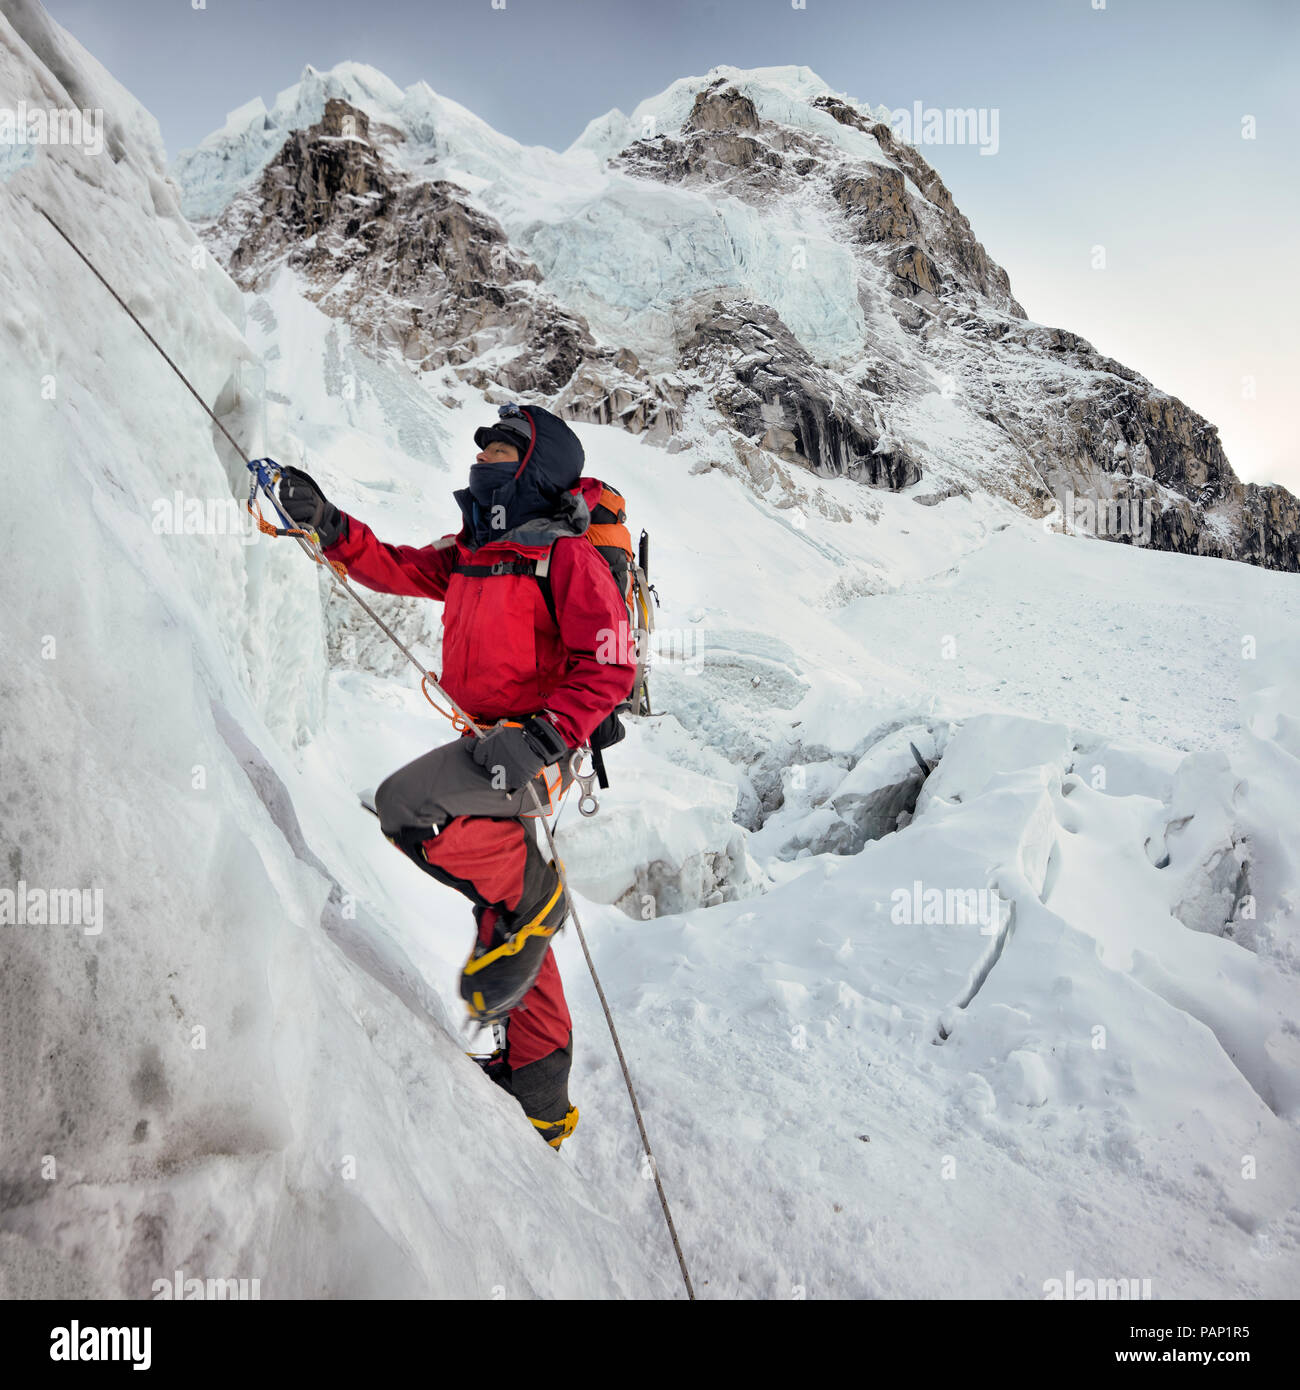 Nepal, Solo Khumbu, Everest, Sagamartha National Park, Mountaineer climbing icefall - Stock Image